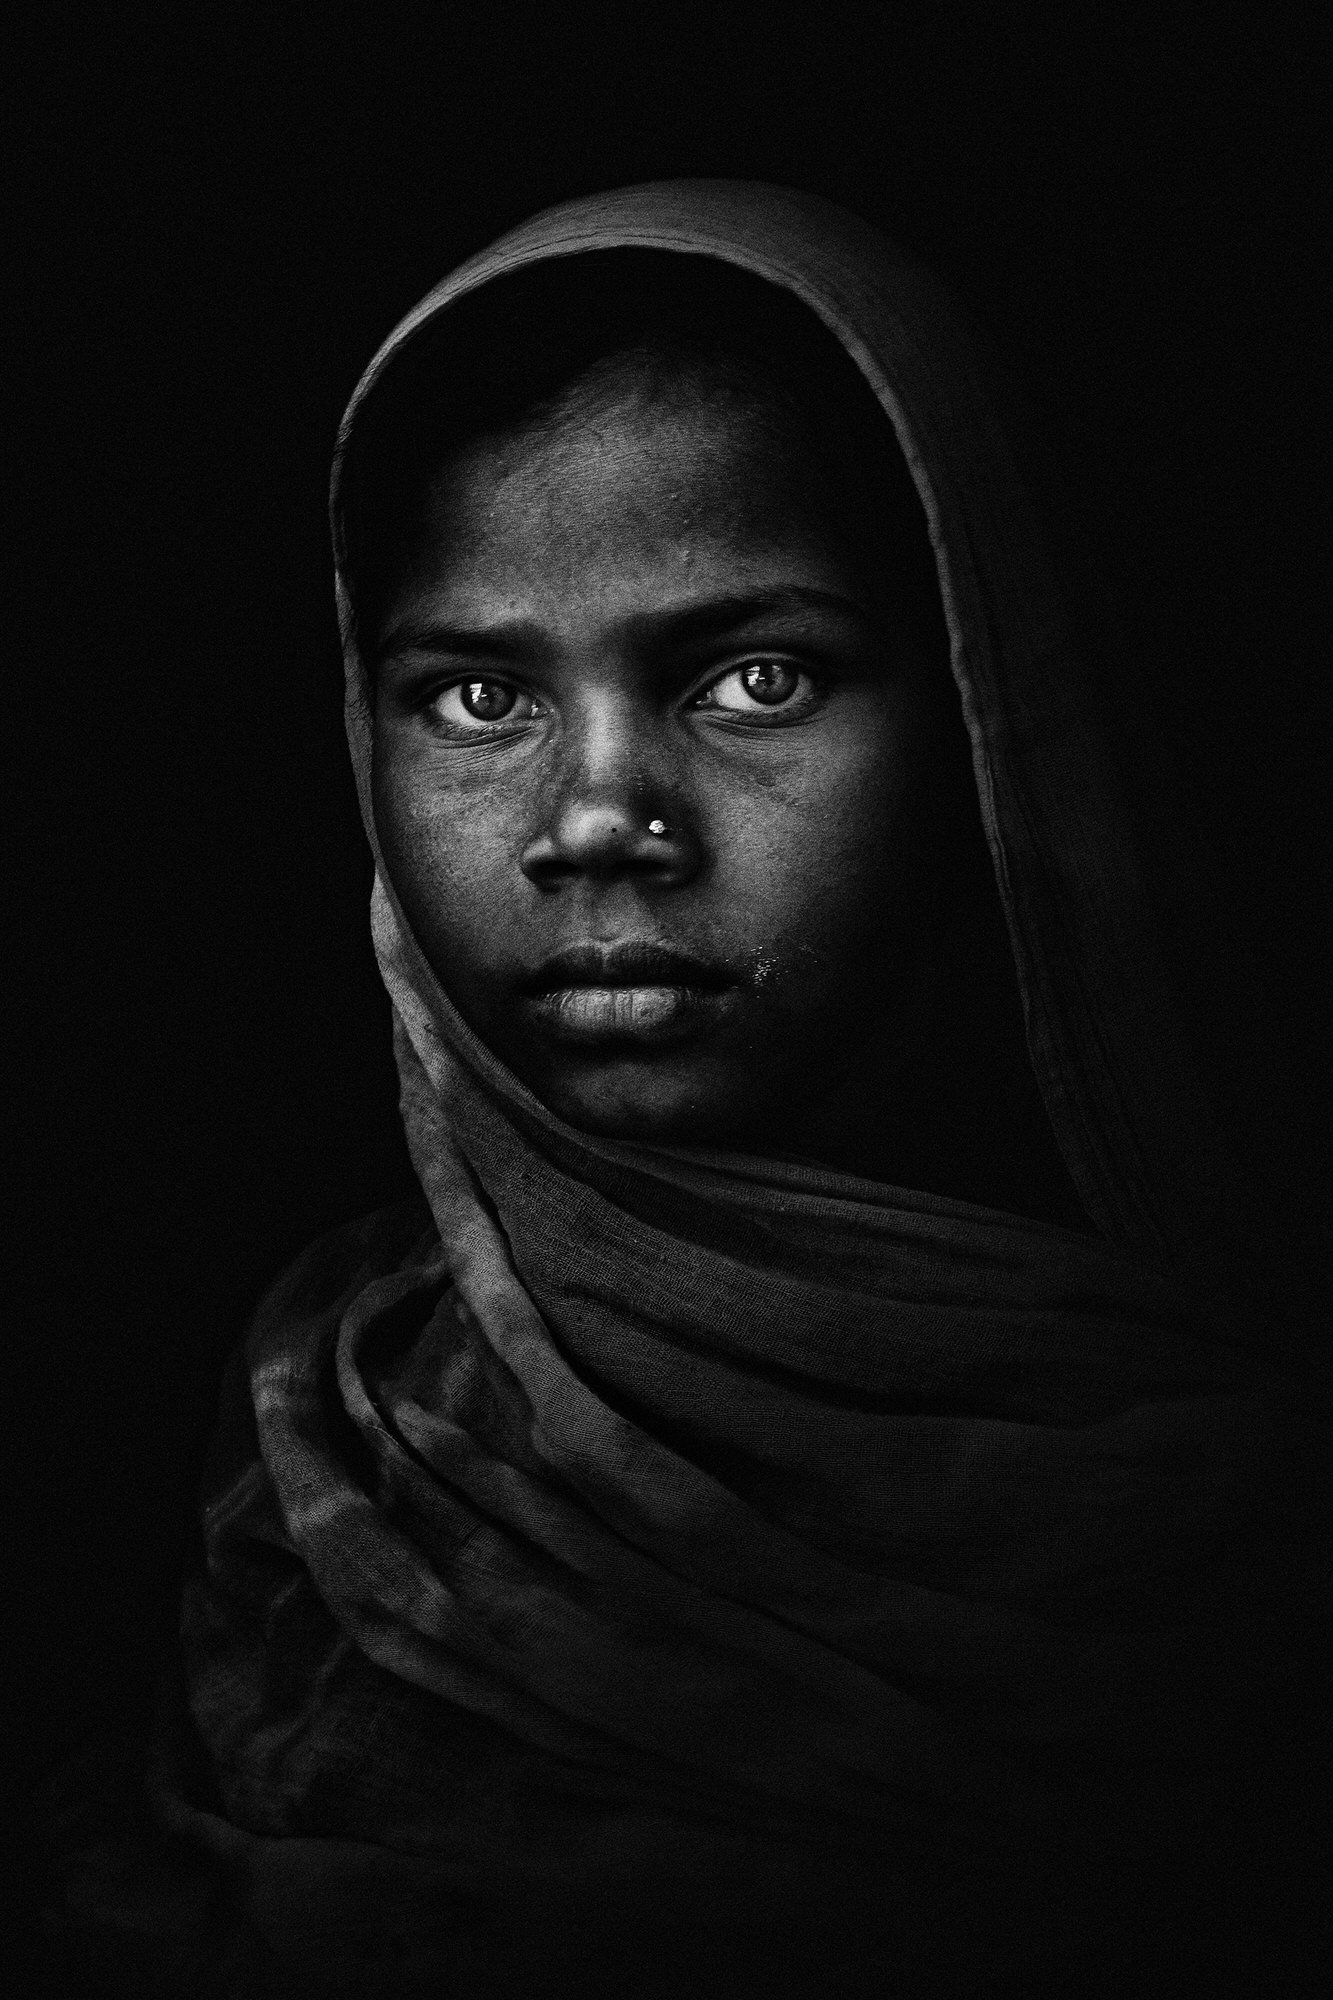 Black and White photography by Donell Gumiran